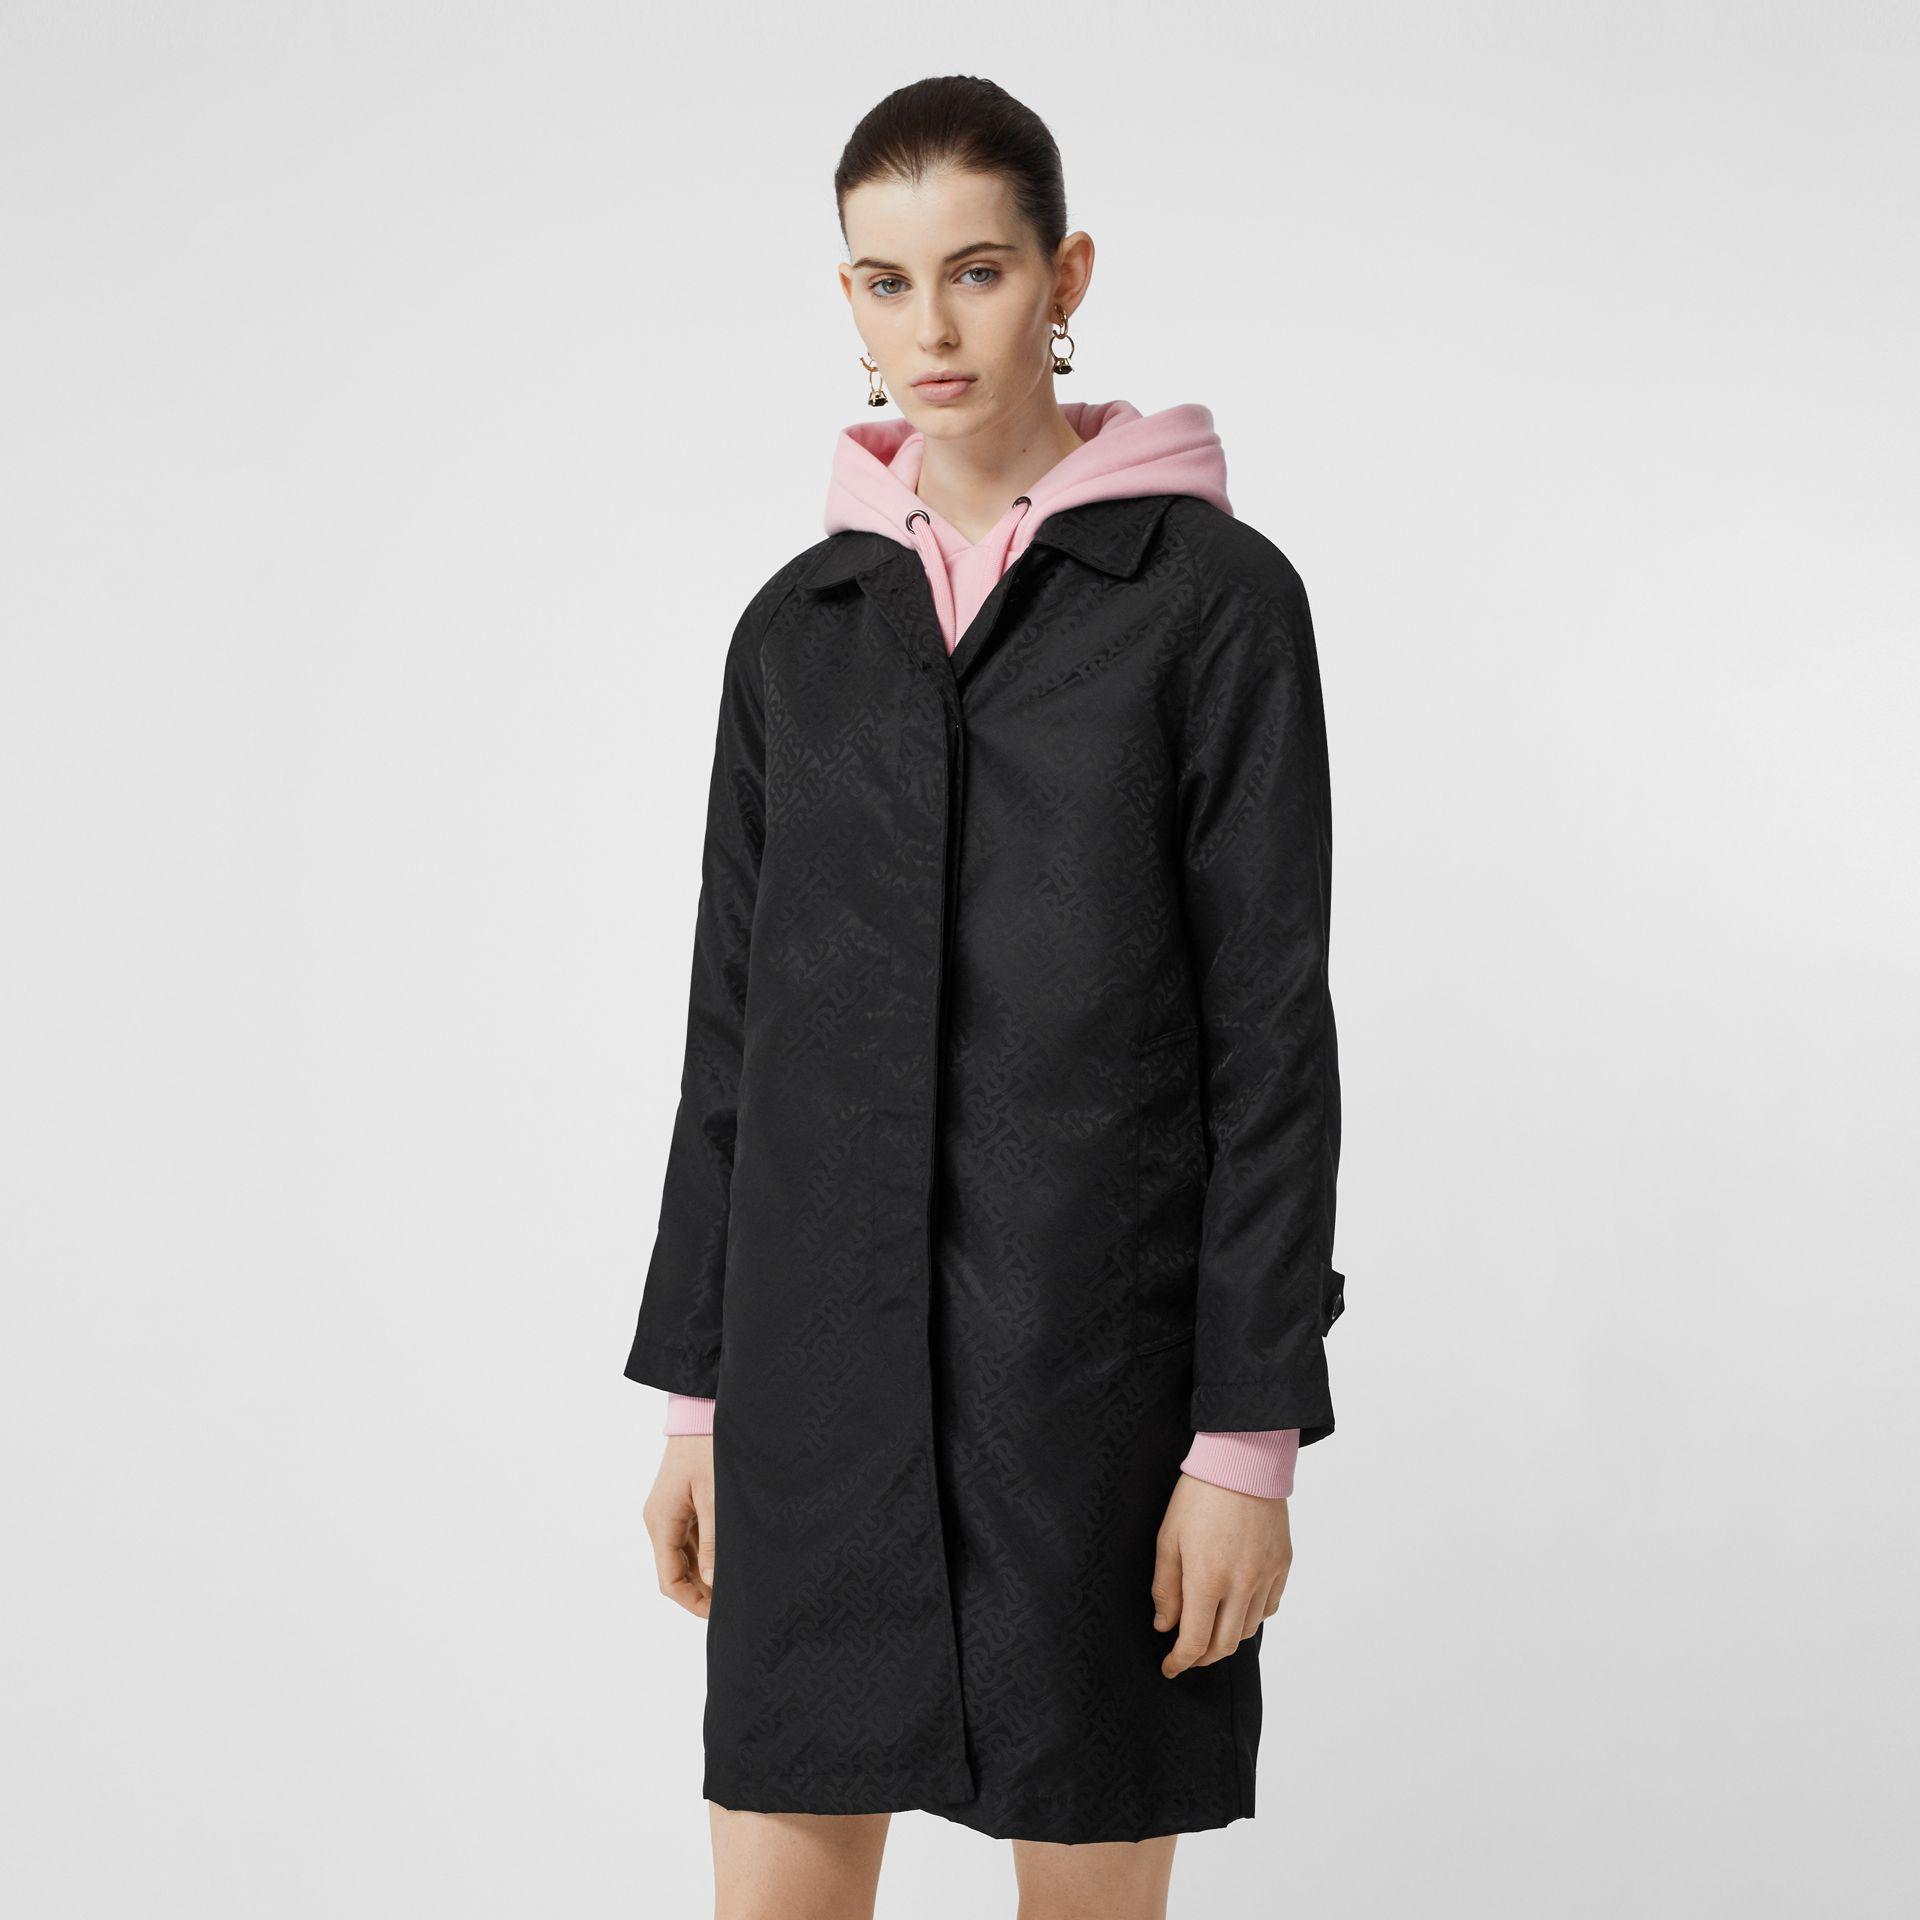 Monogram ECONYL® Jacquard Car Coat in Black - Women | Burberry United States - gallery image 6